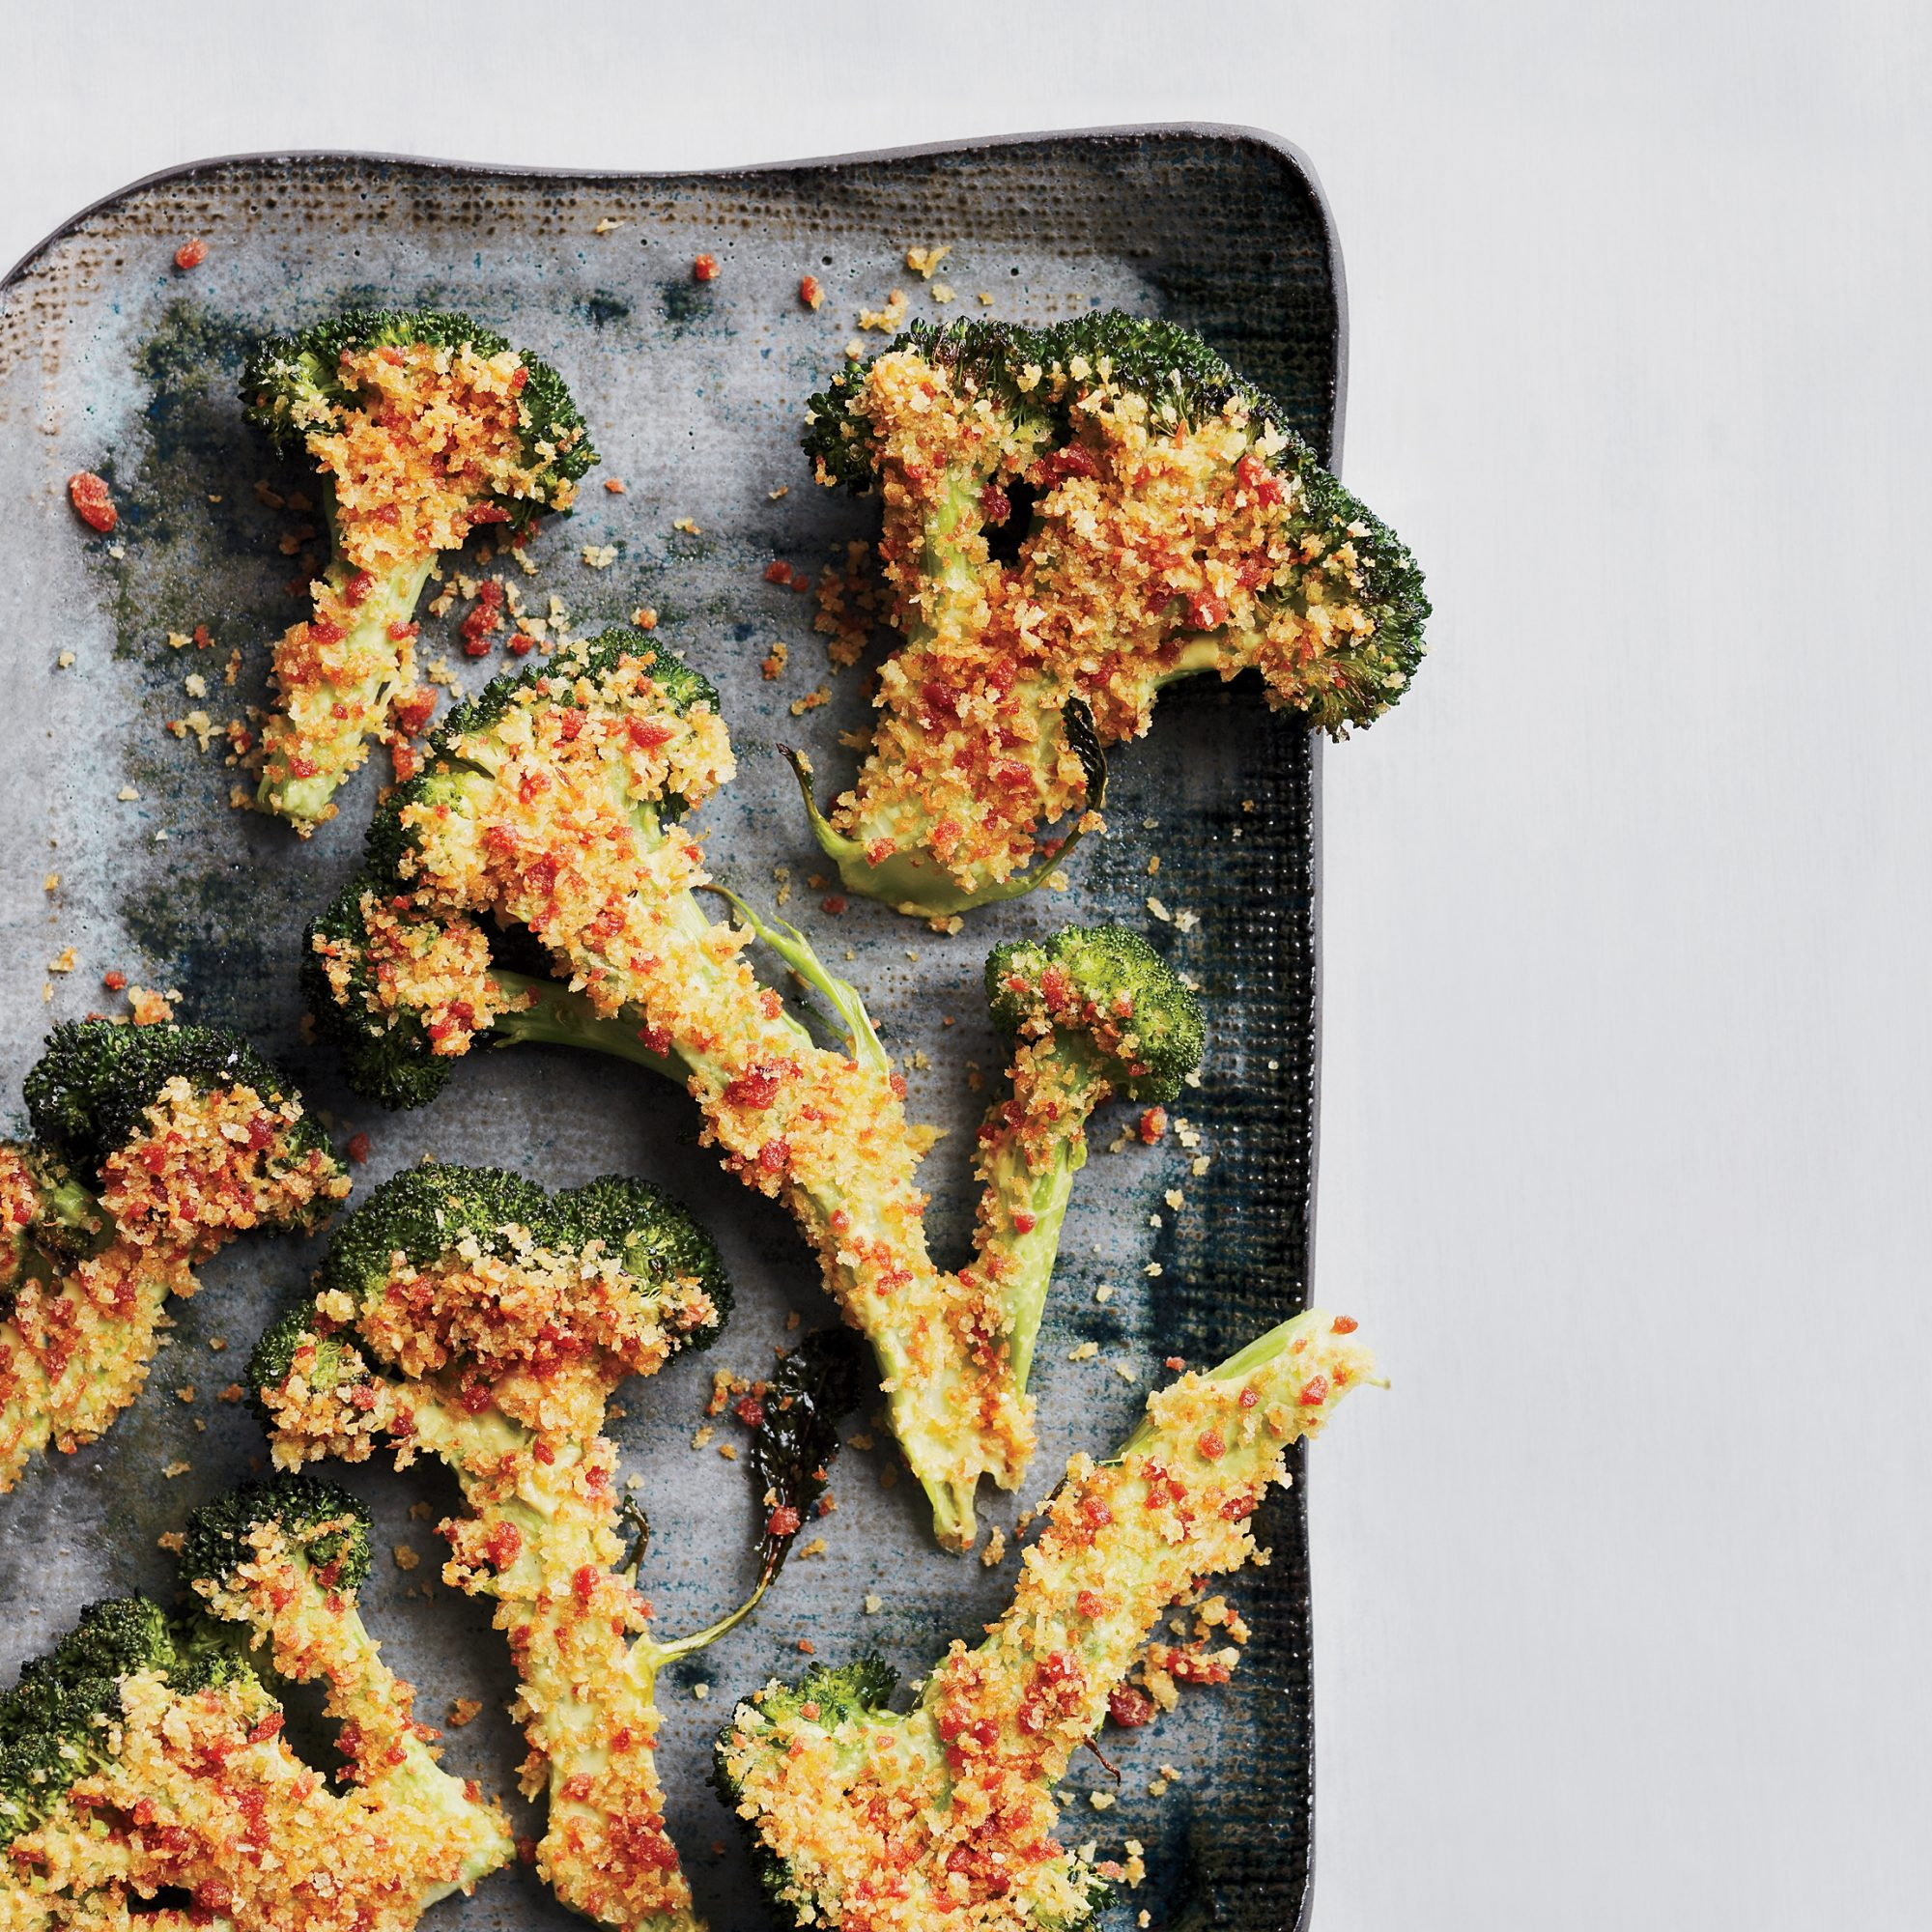 original-201212-r-flash-roasted-broccoli-with-spicy-crumbs.jpg